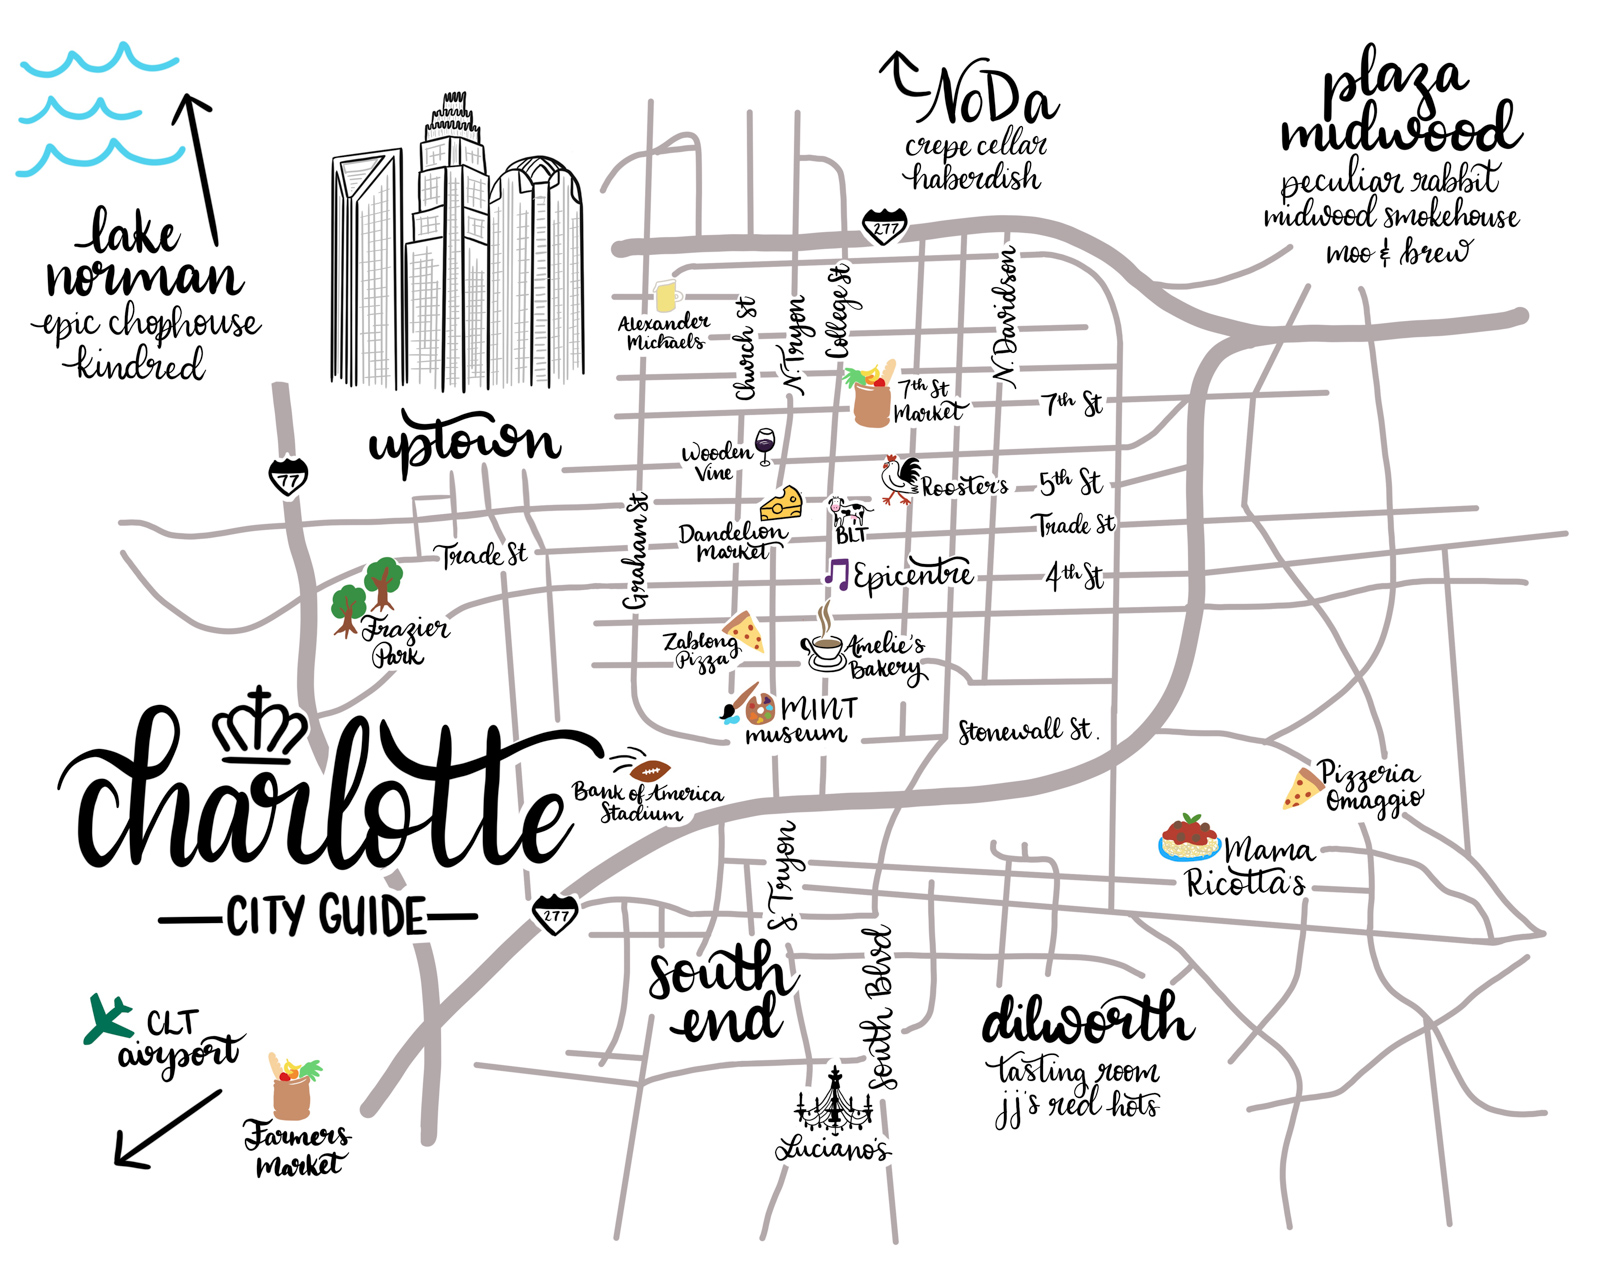 Charlotte travel guide | what to do in Charlotte | things to do in Charlotte | traveling to Charlotte | best food in Charlotte | where to eat in Charlotte | uptown Charlotte food | BLT steak Charlotte